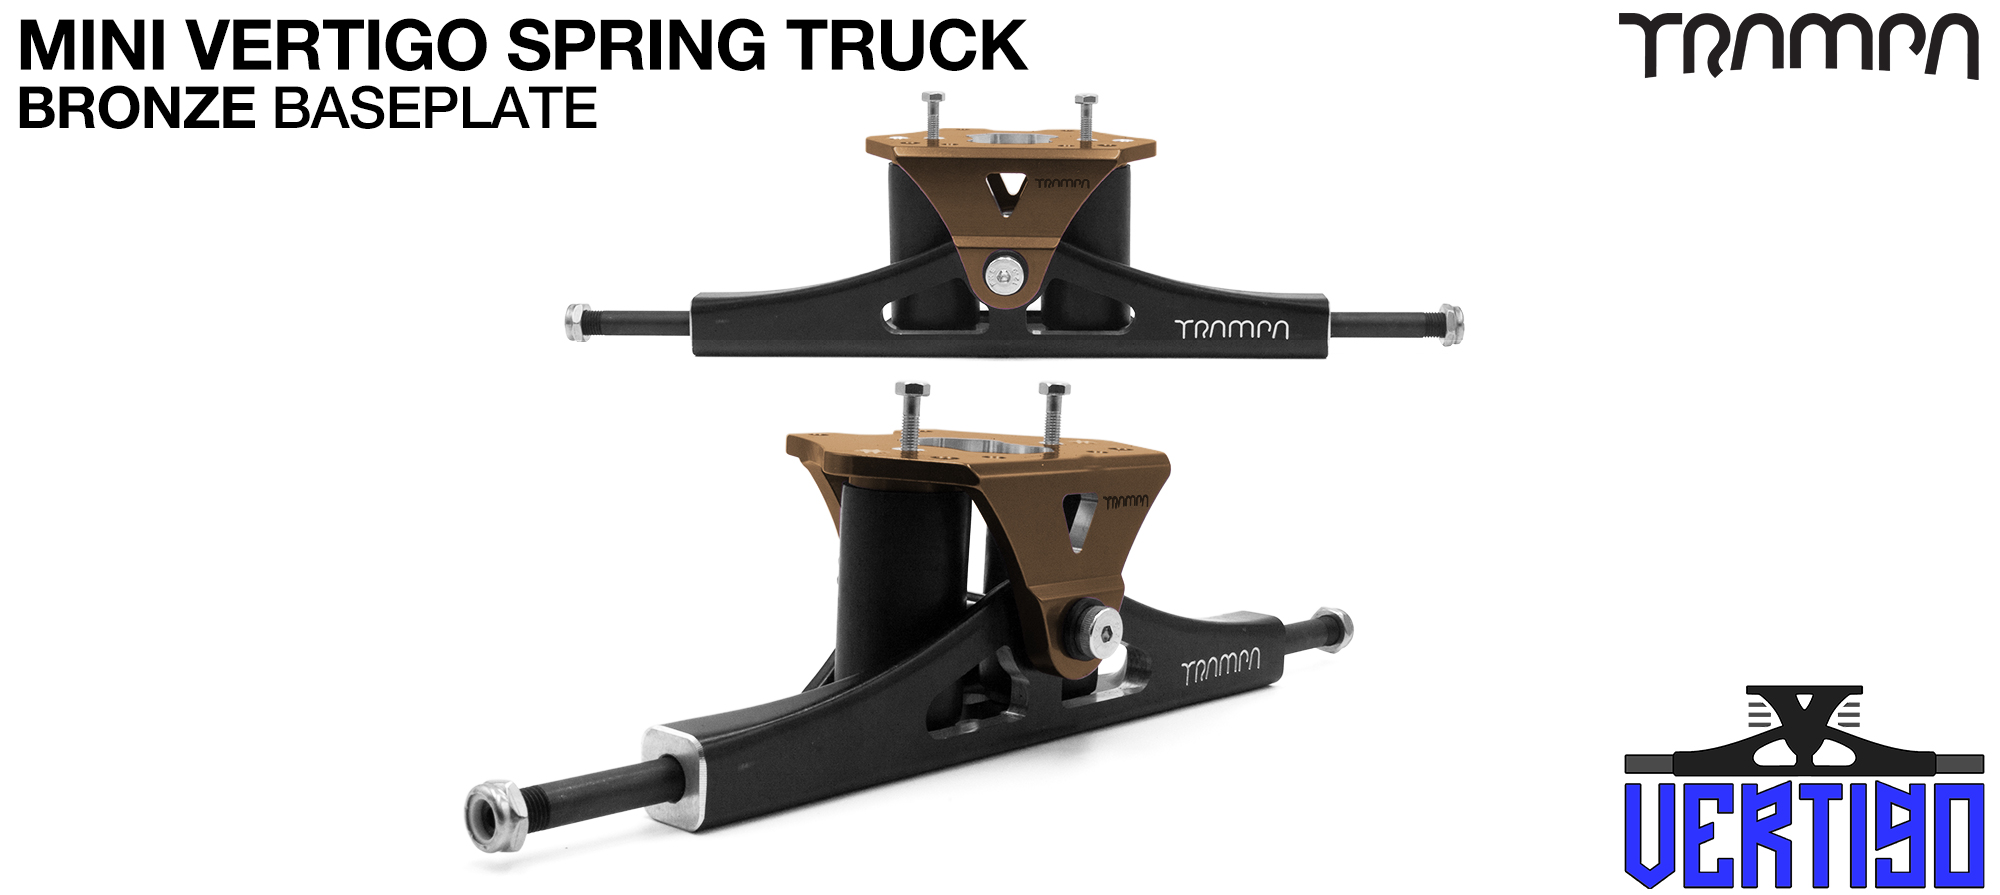 Mini VERTIGO TRAMPA TRUCKS - CNC FORGED Channel Hanger with 9.525mm HOLLOW Steel Axle CNC Baseplate Stainless Steel Kingpin - BRONZE